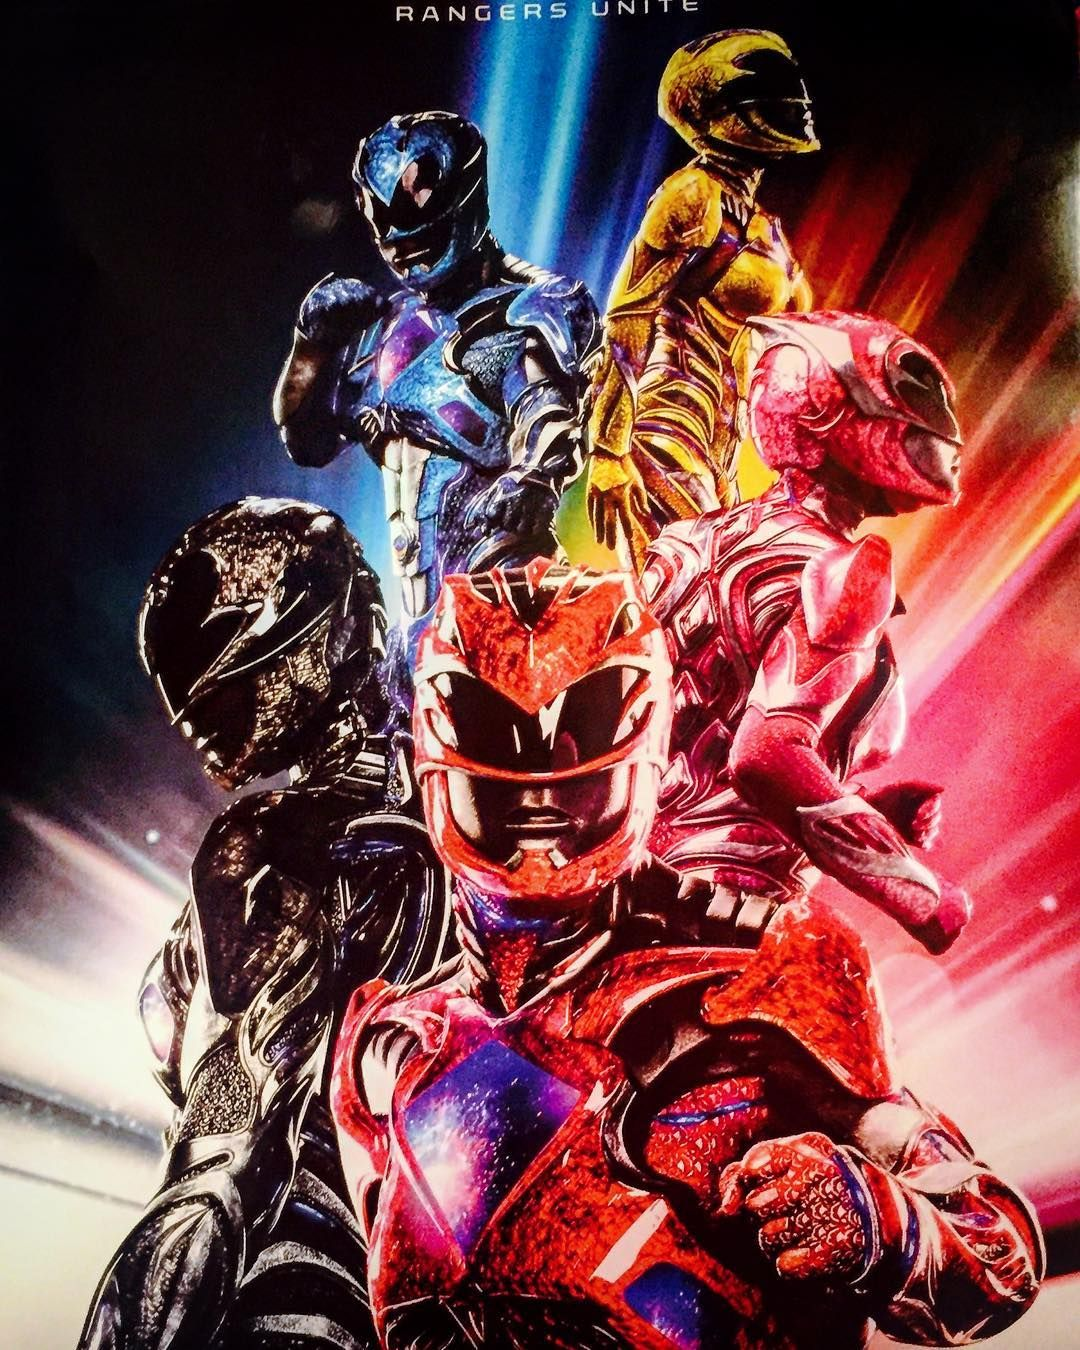 Pin by Scott Gamble on Morphing time Power rangers